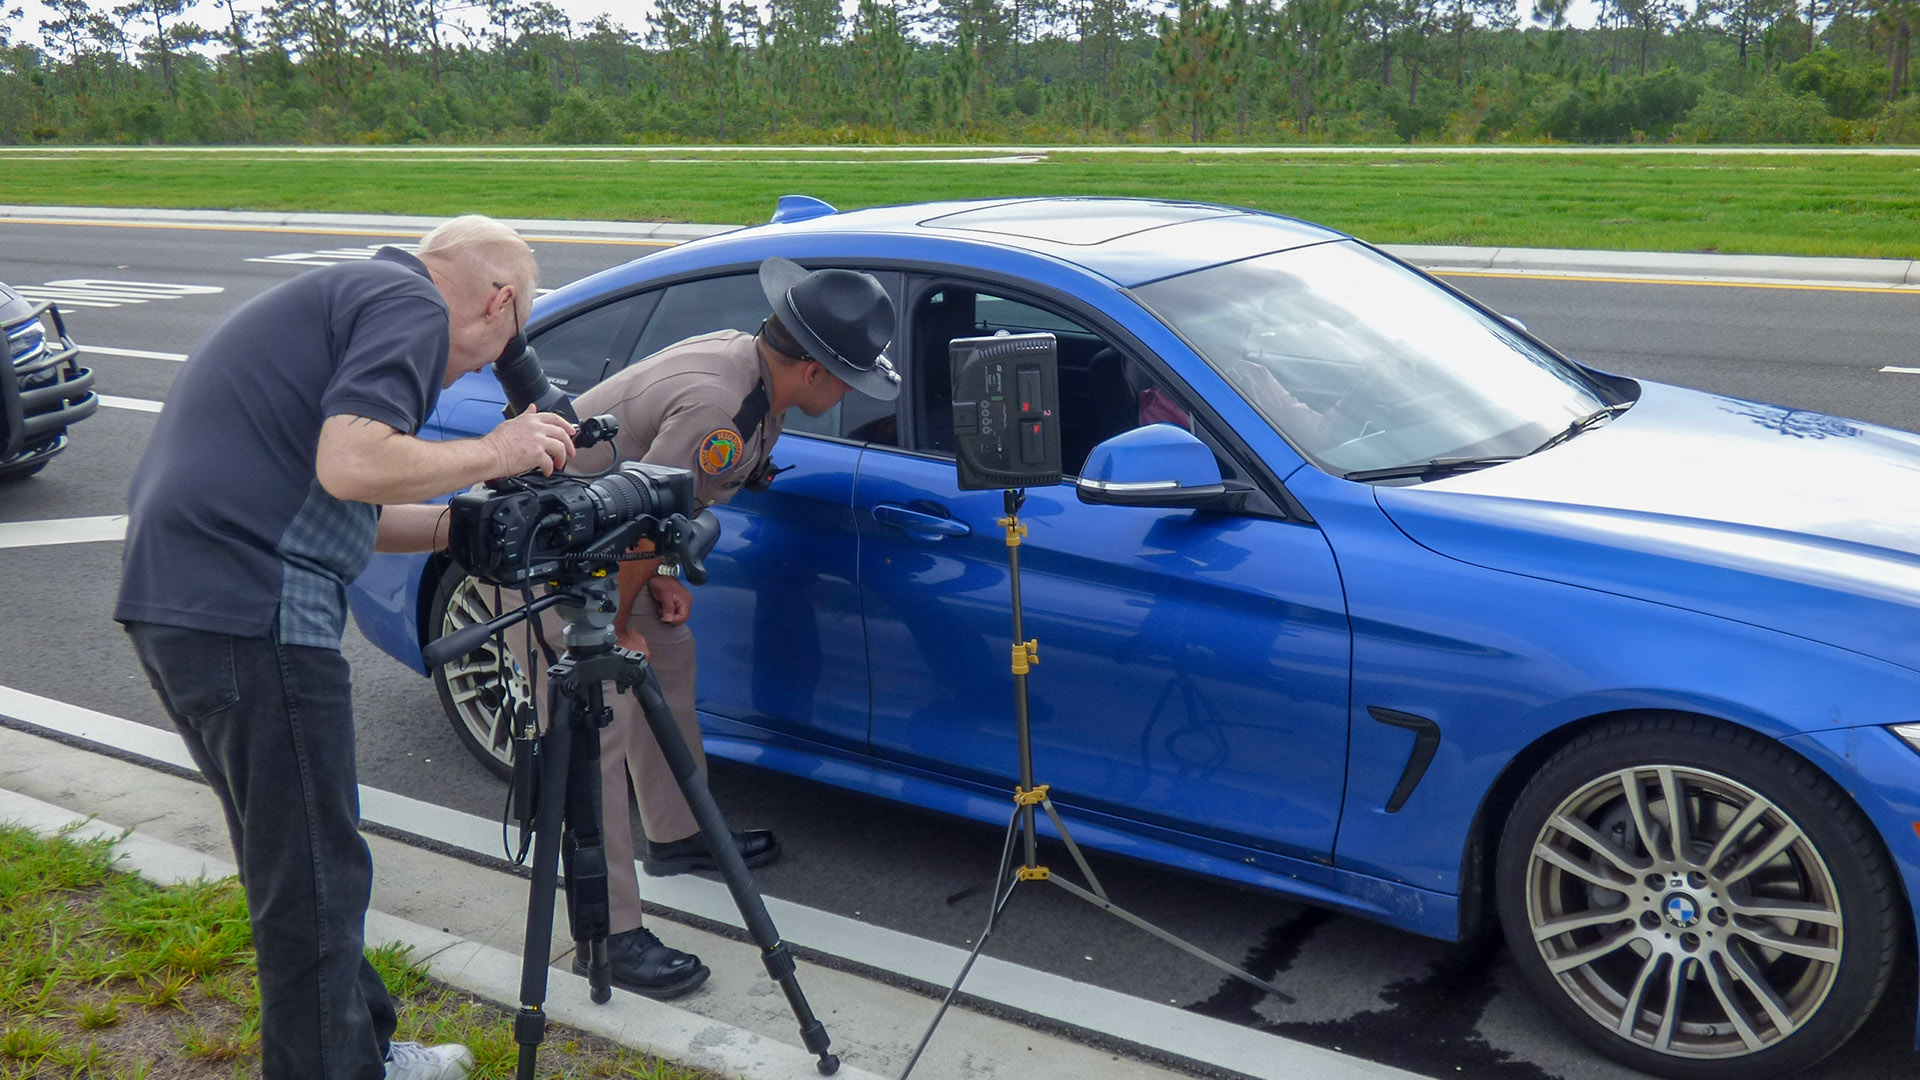 Florida Law Enforcement Training Video Helps Aging Drivers Stay Safe and Mobile